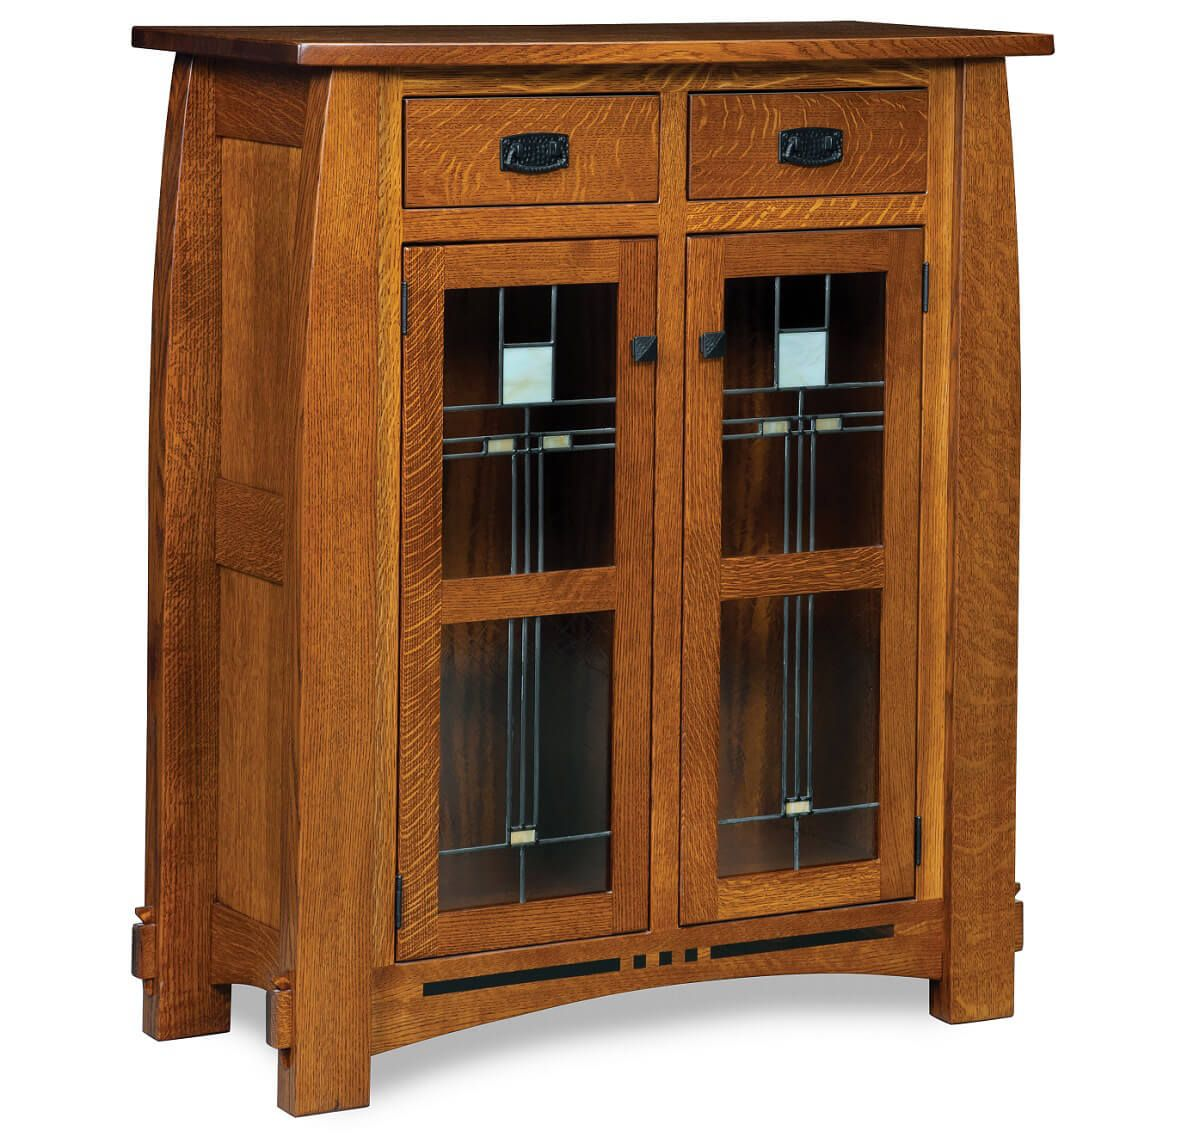 Sitka Craftsman Dining Room Storage Pantry